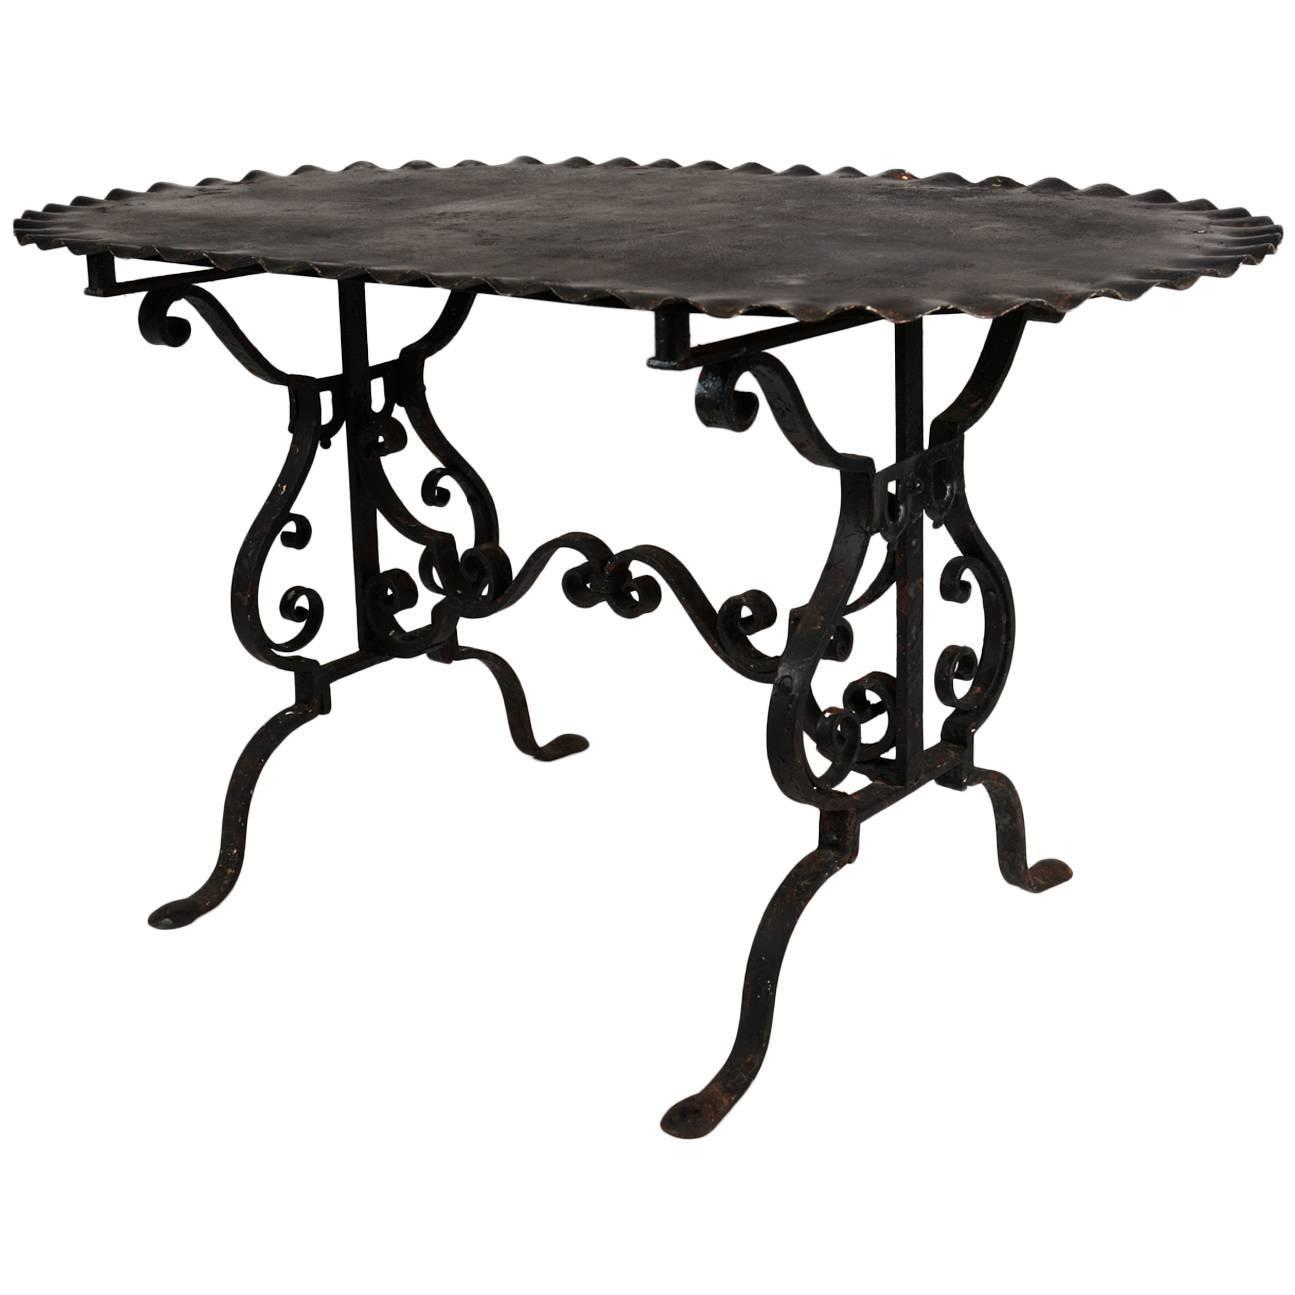 Black painted wrought iron side table for sale at 1stdibs for Wrought iron side table